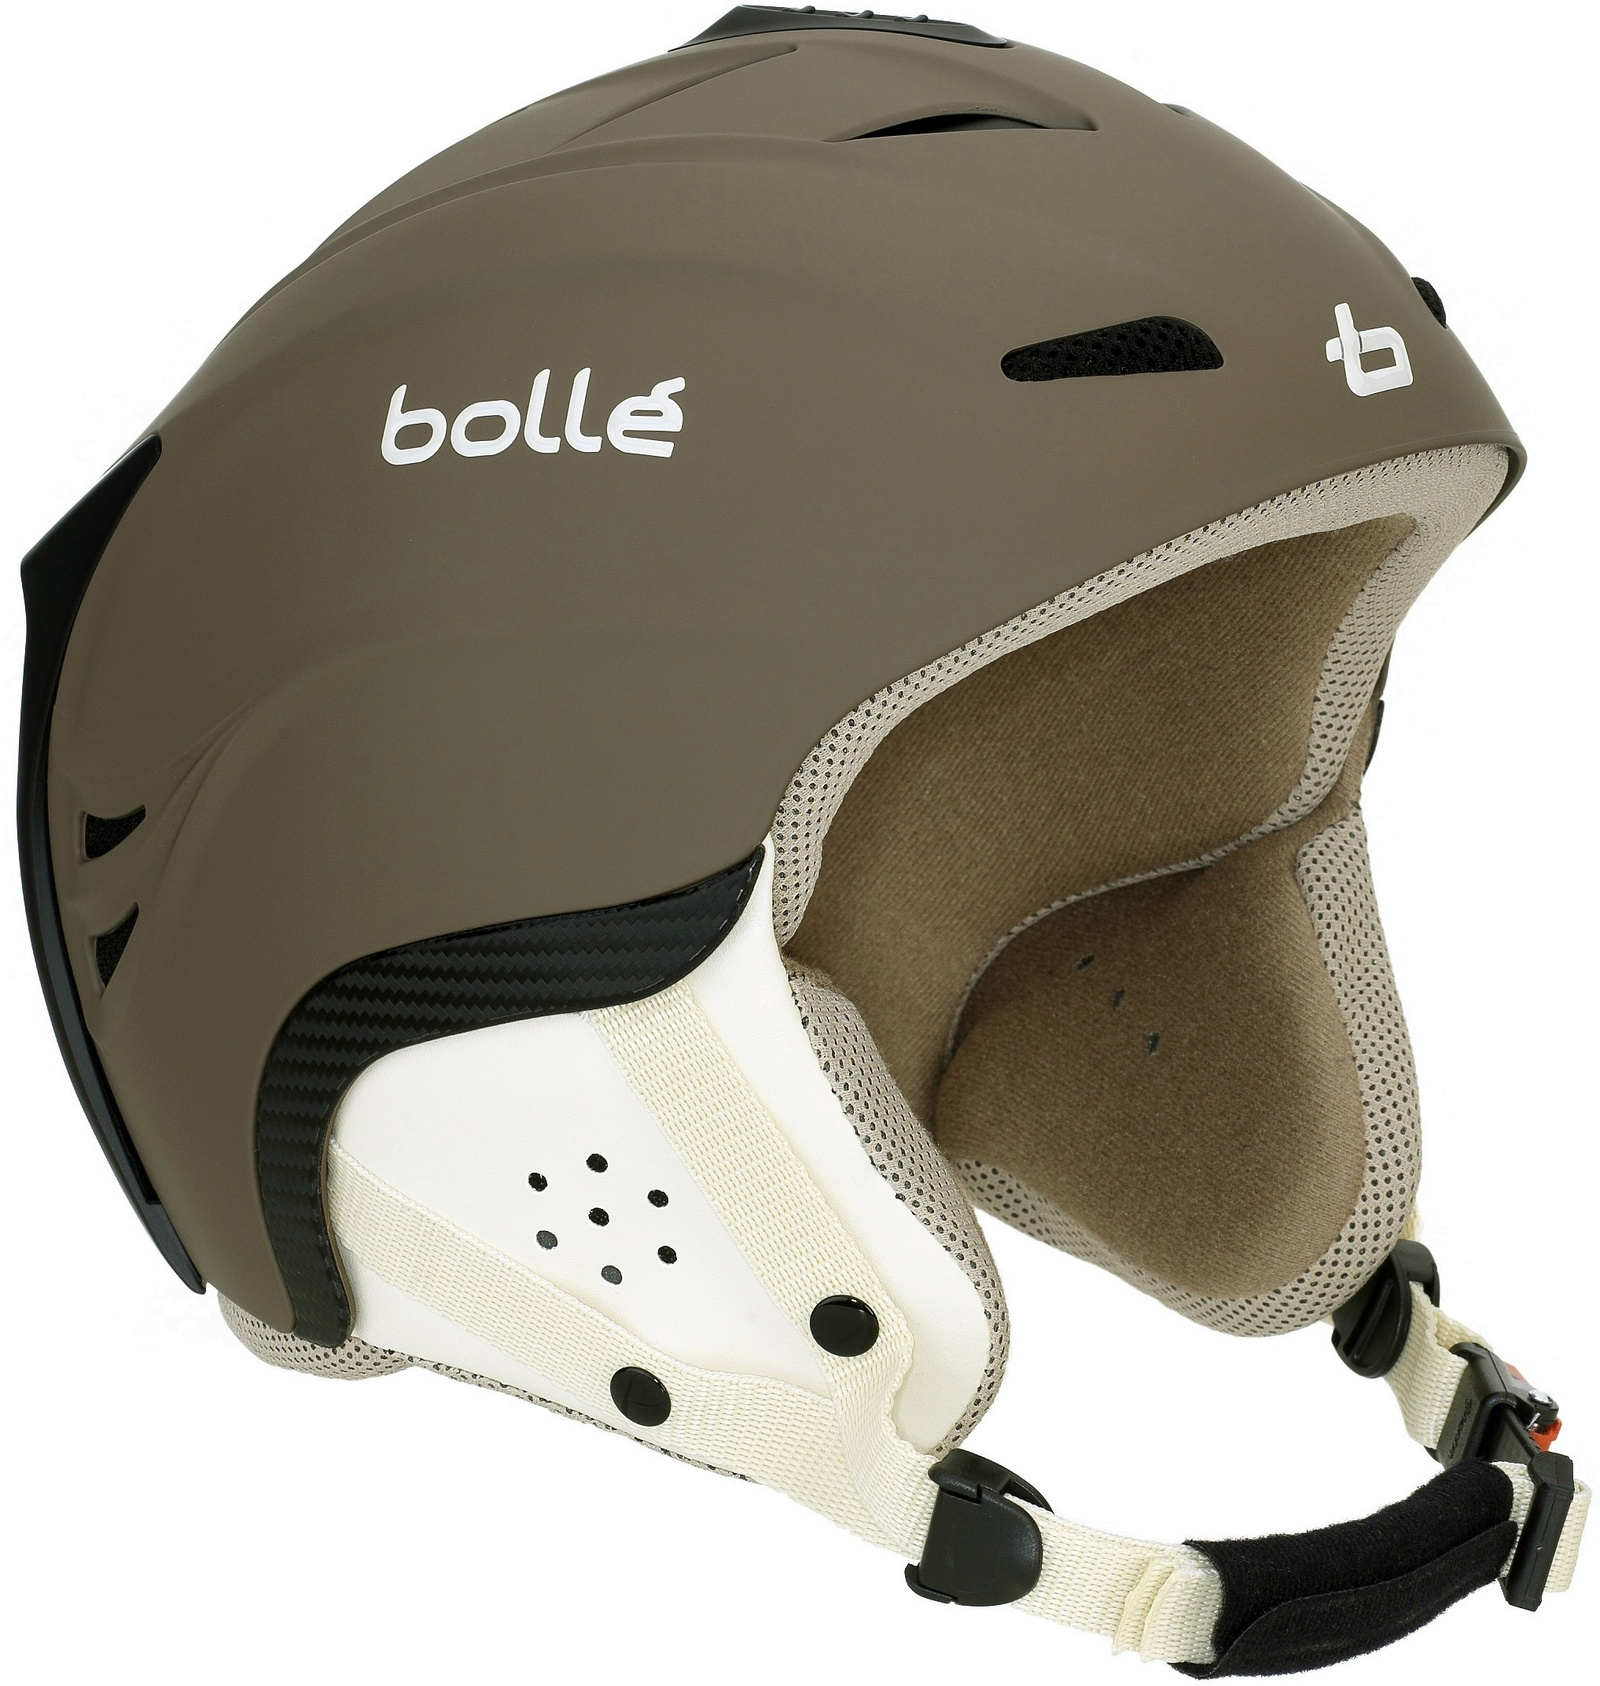 Helma Bollé POWDER Soft Khaki model 2011/12